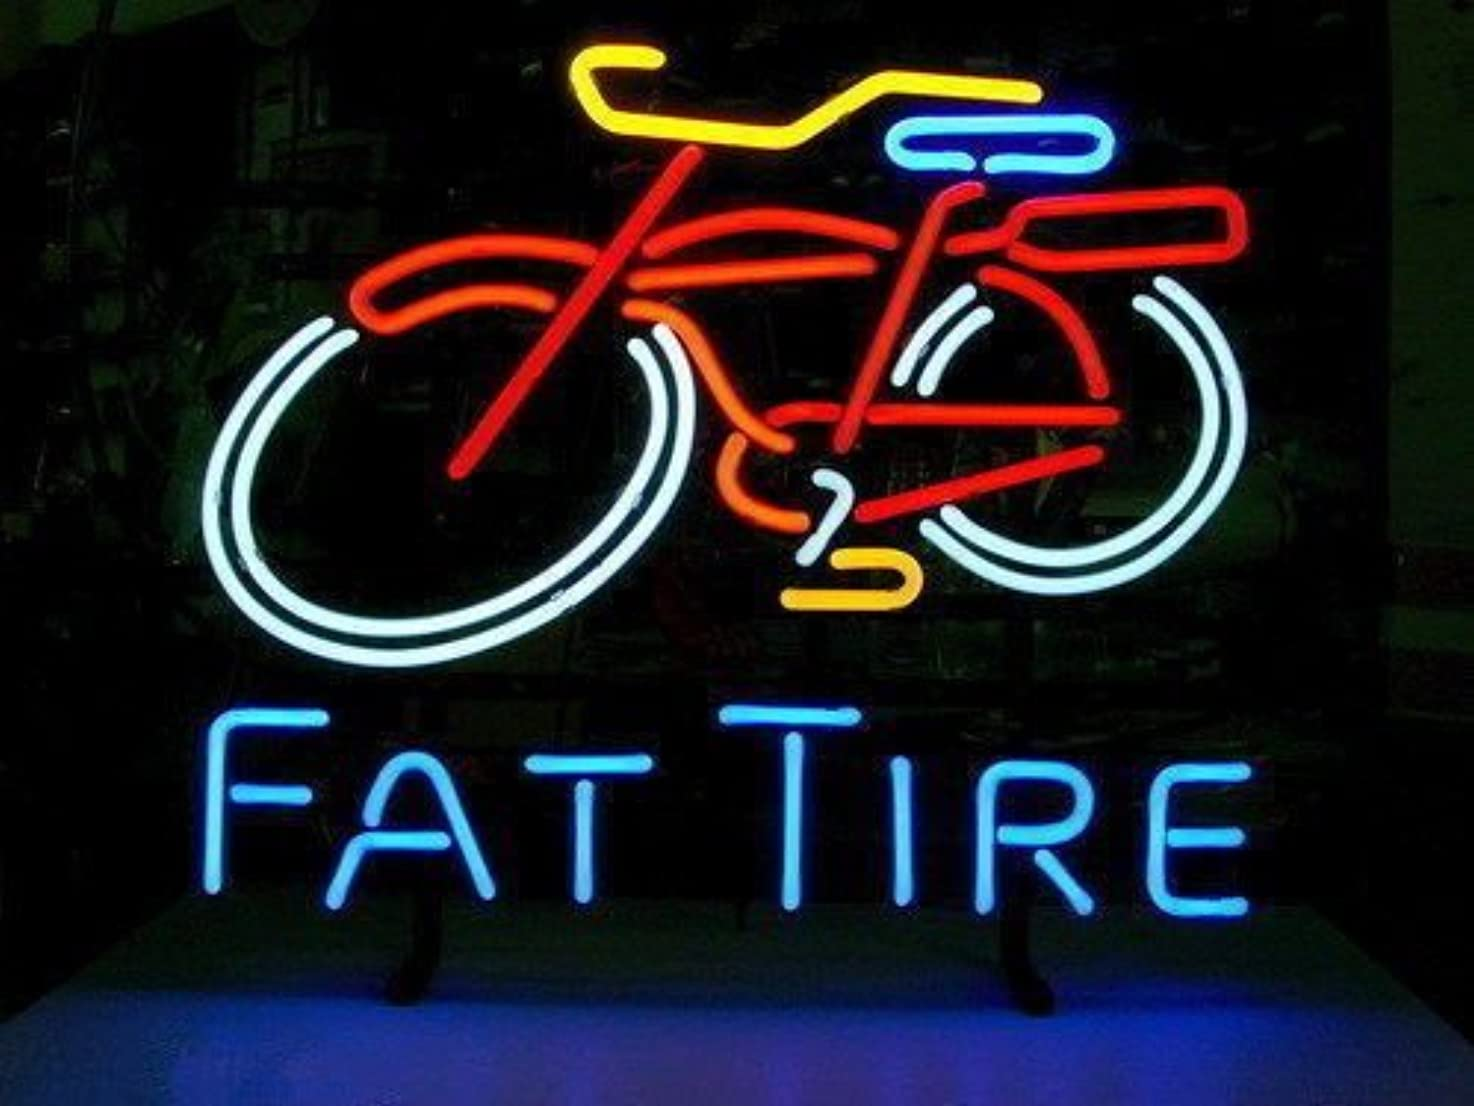 Urby™ Fat Tire Real Glass Neon Light Sign Home Beer Bar Pub Recreation Room Game Room Windows Garage Wall Sign 18''x14'' A14-03